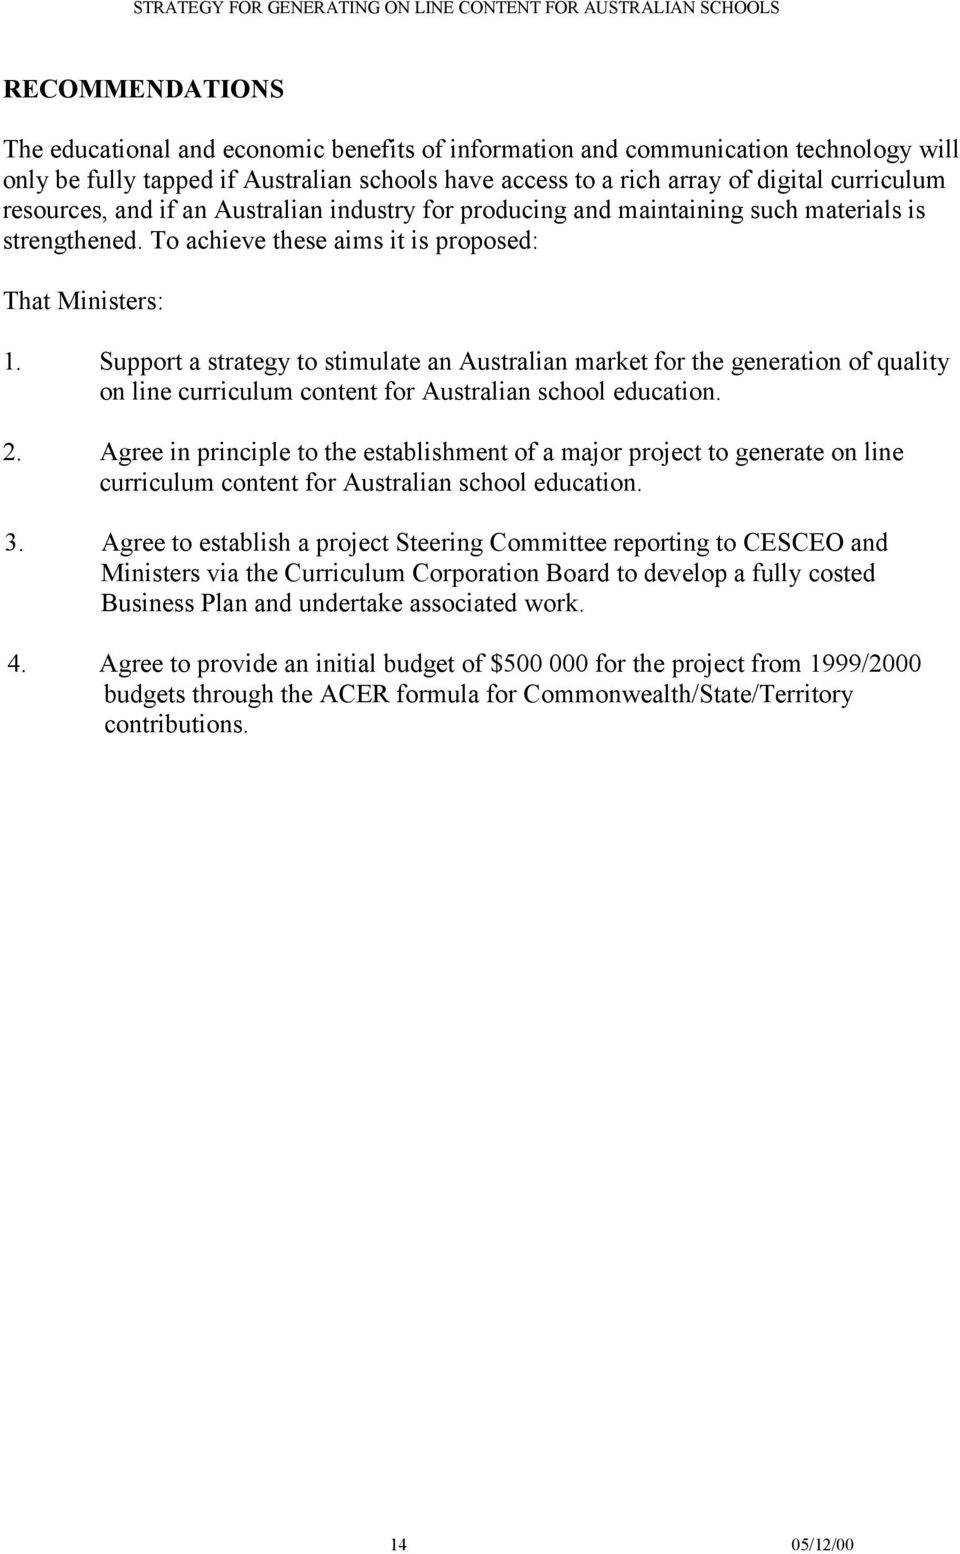 Support a strategy to stimulate an Australian market for the generation of quality on line curriculum content for Australian school education. 2.